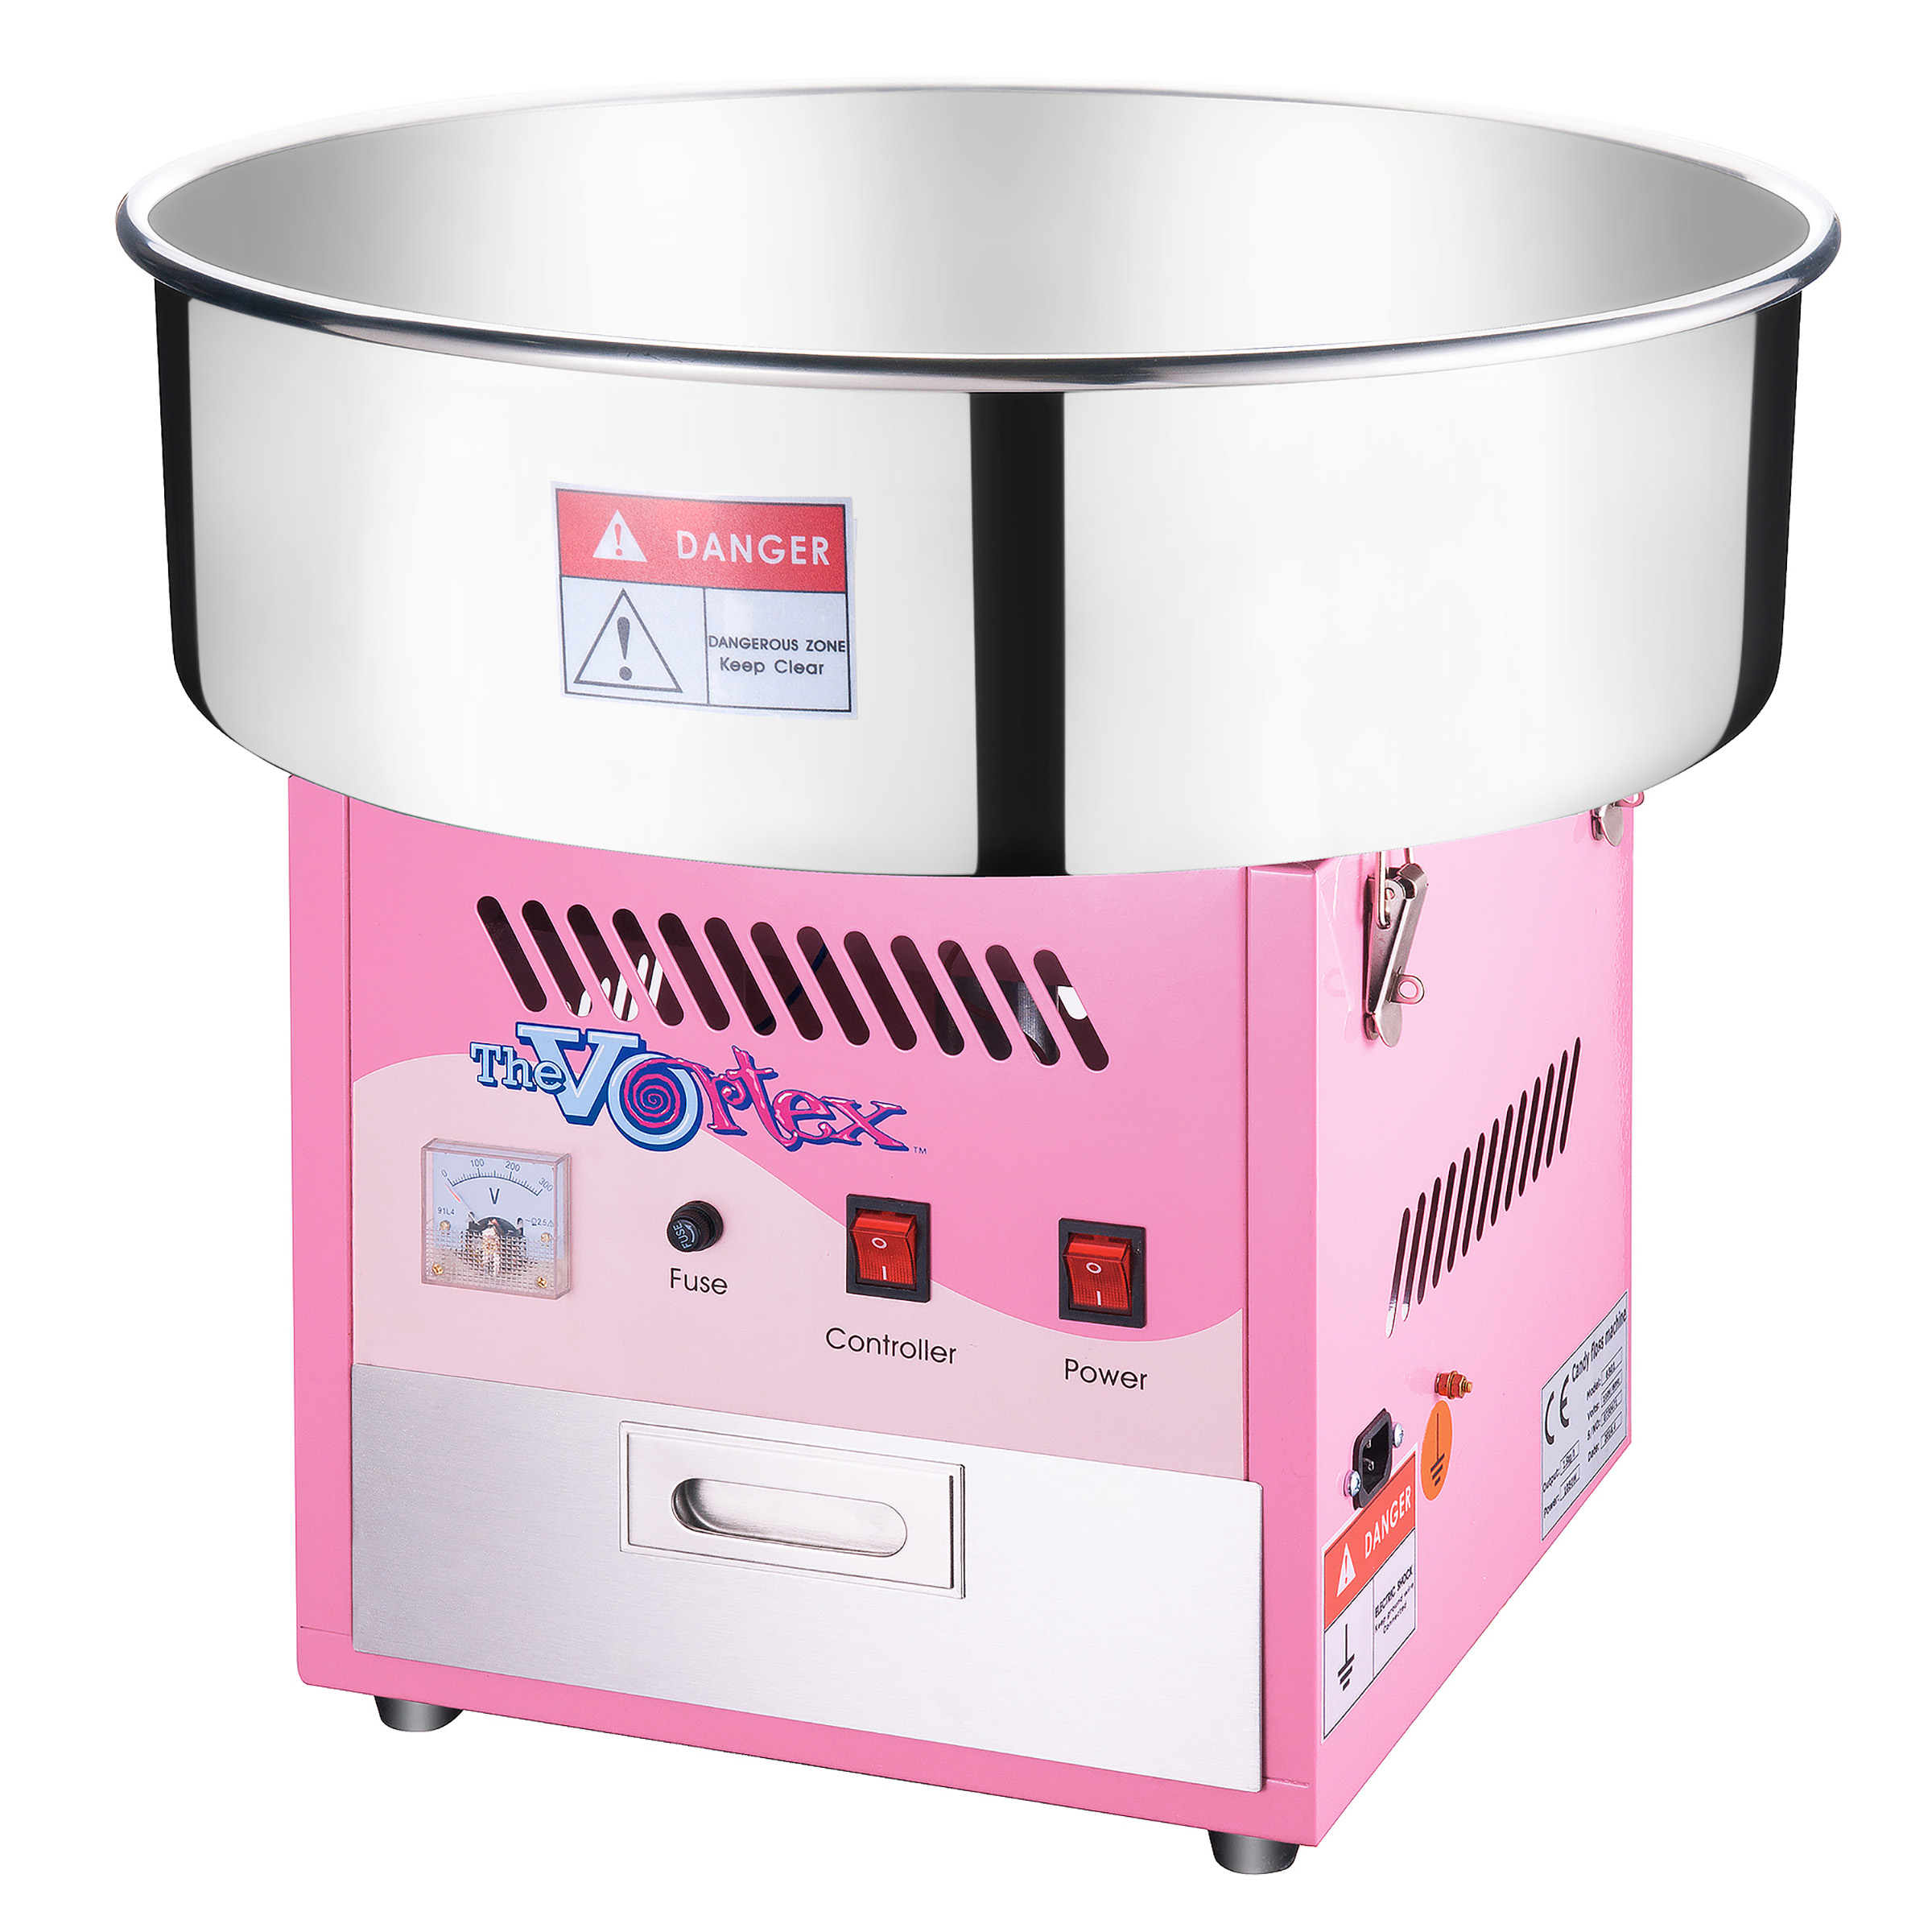 Commercial Quality Cotton Candy Machine and Electric Candy Floss Maker by Great Northern Popcorn